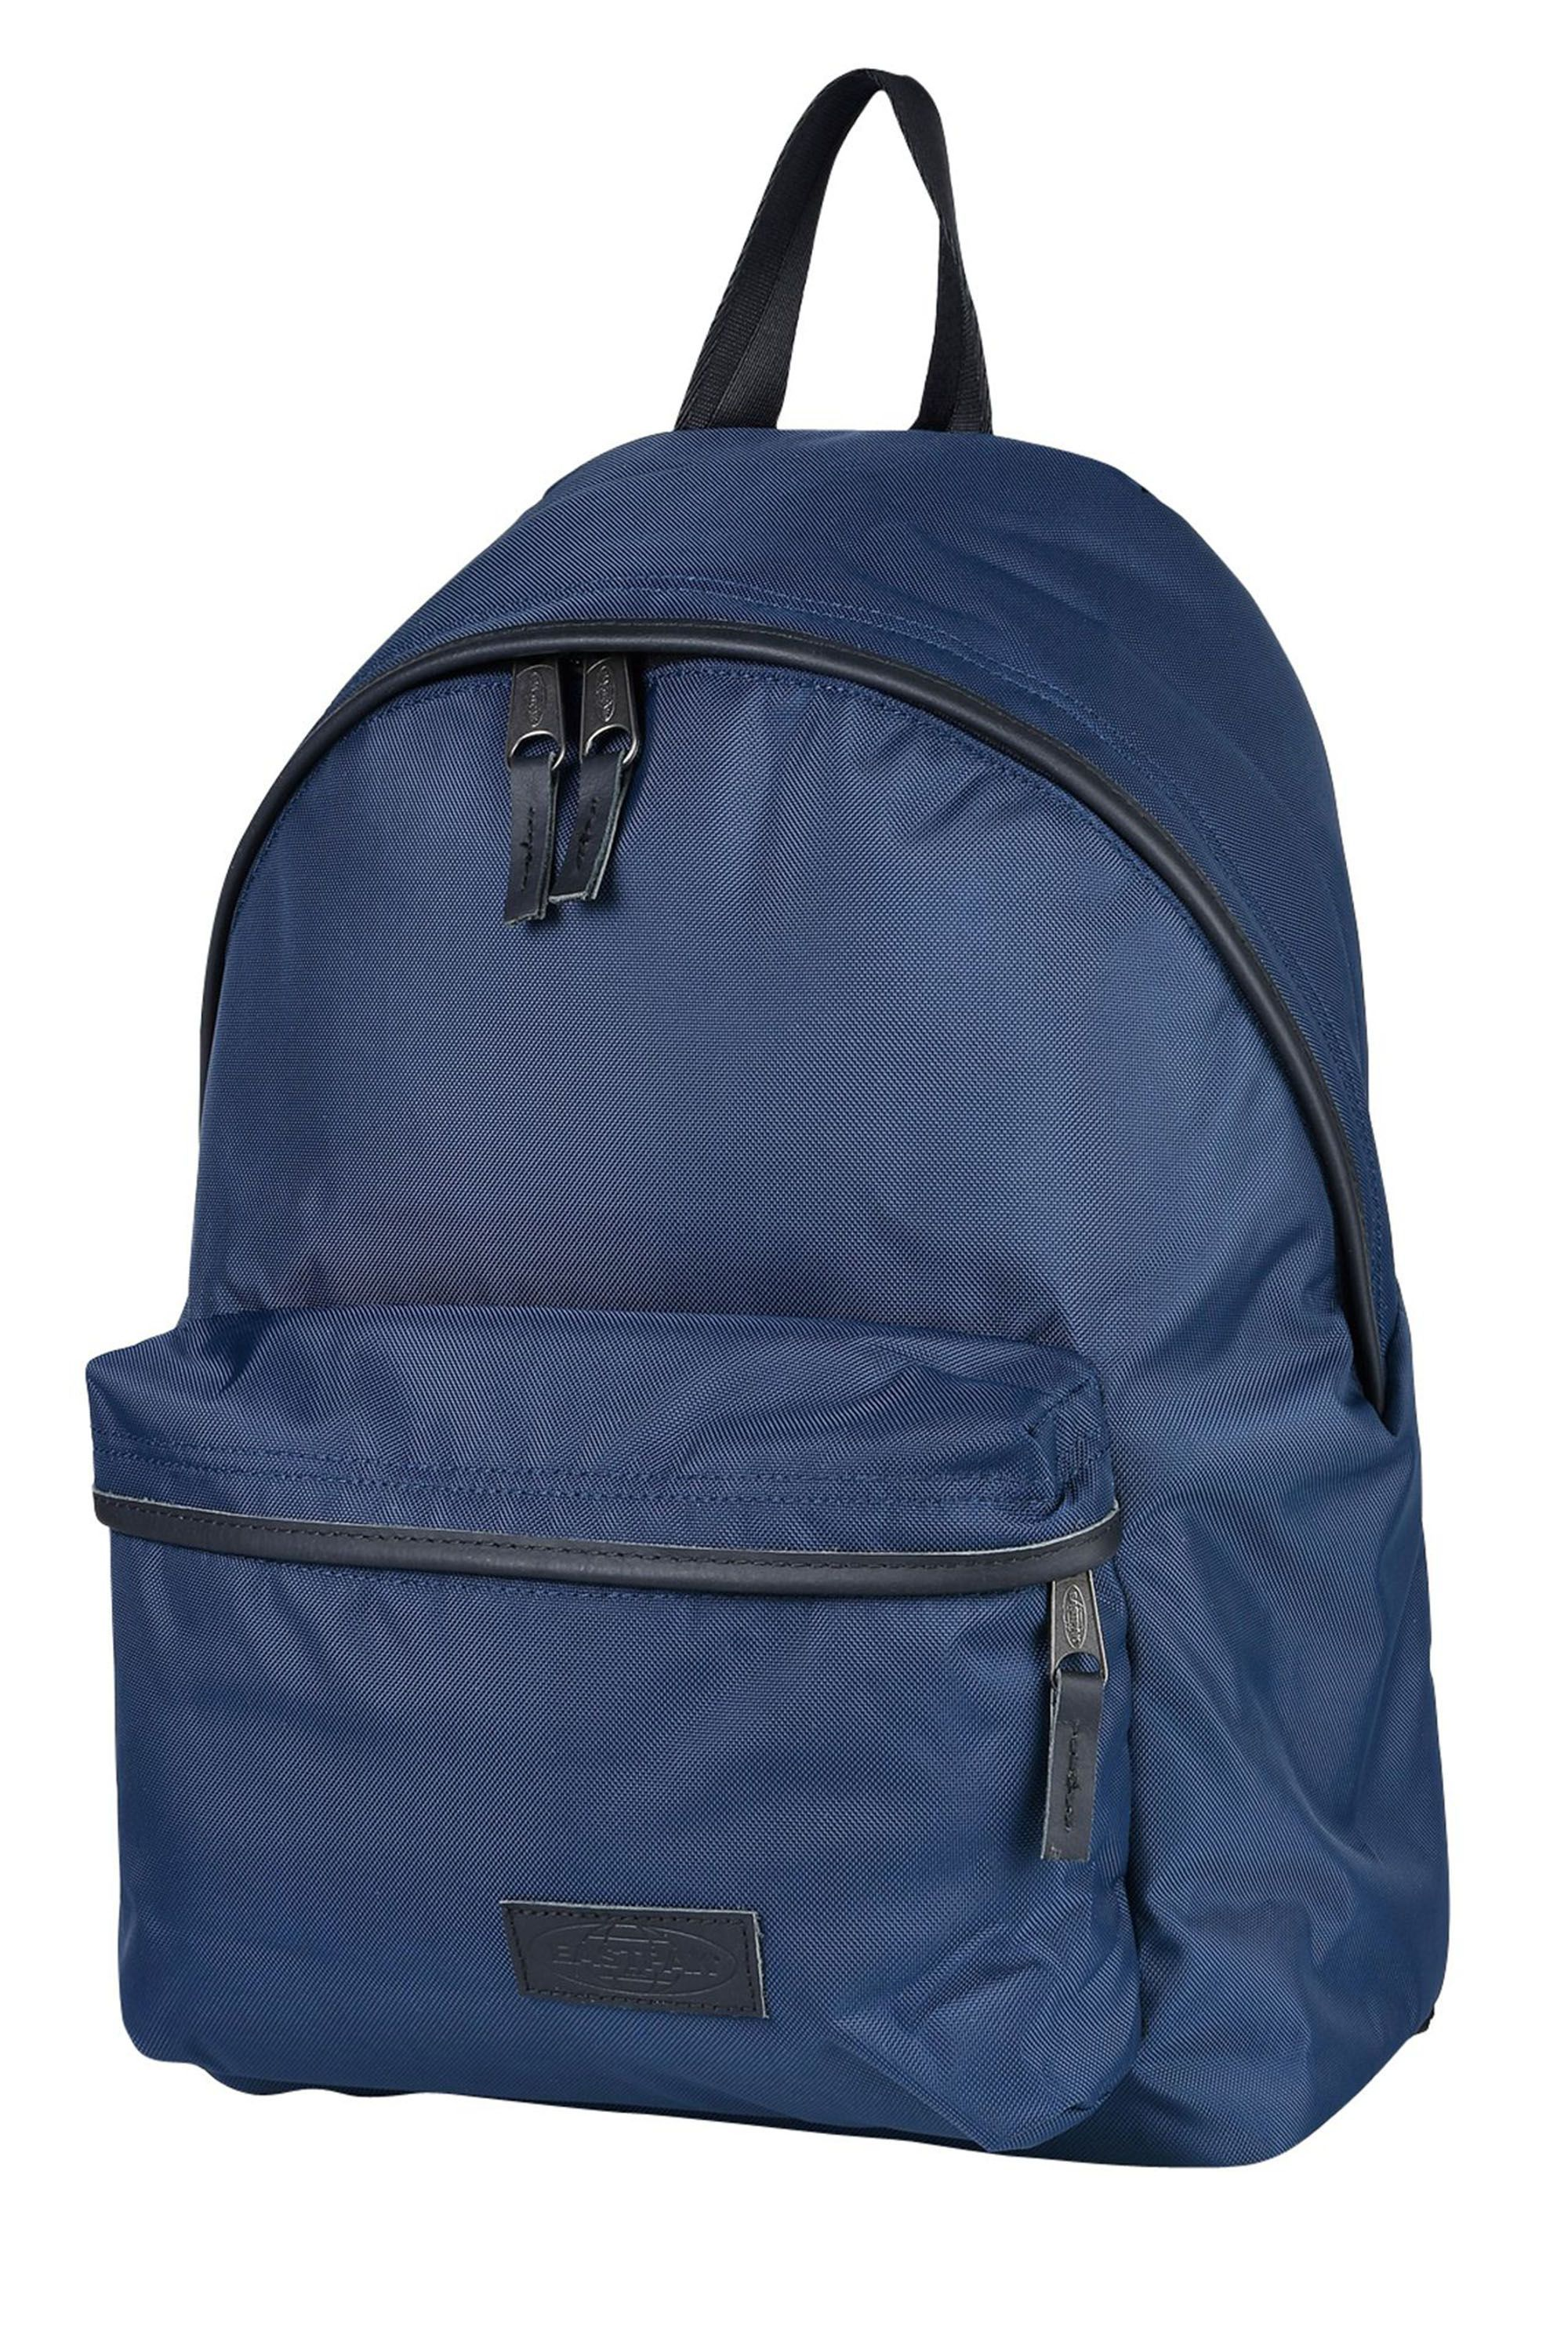 49fcdeac49f29 Best Backpacks for Women 2018 - 15 Backpacks Made for Adults